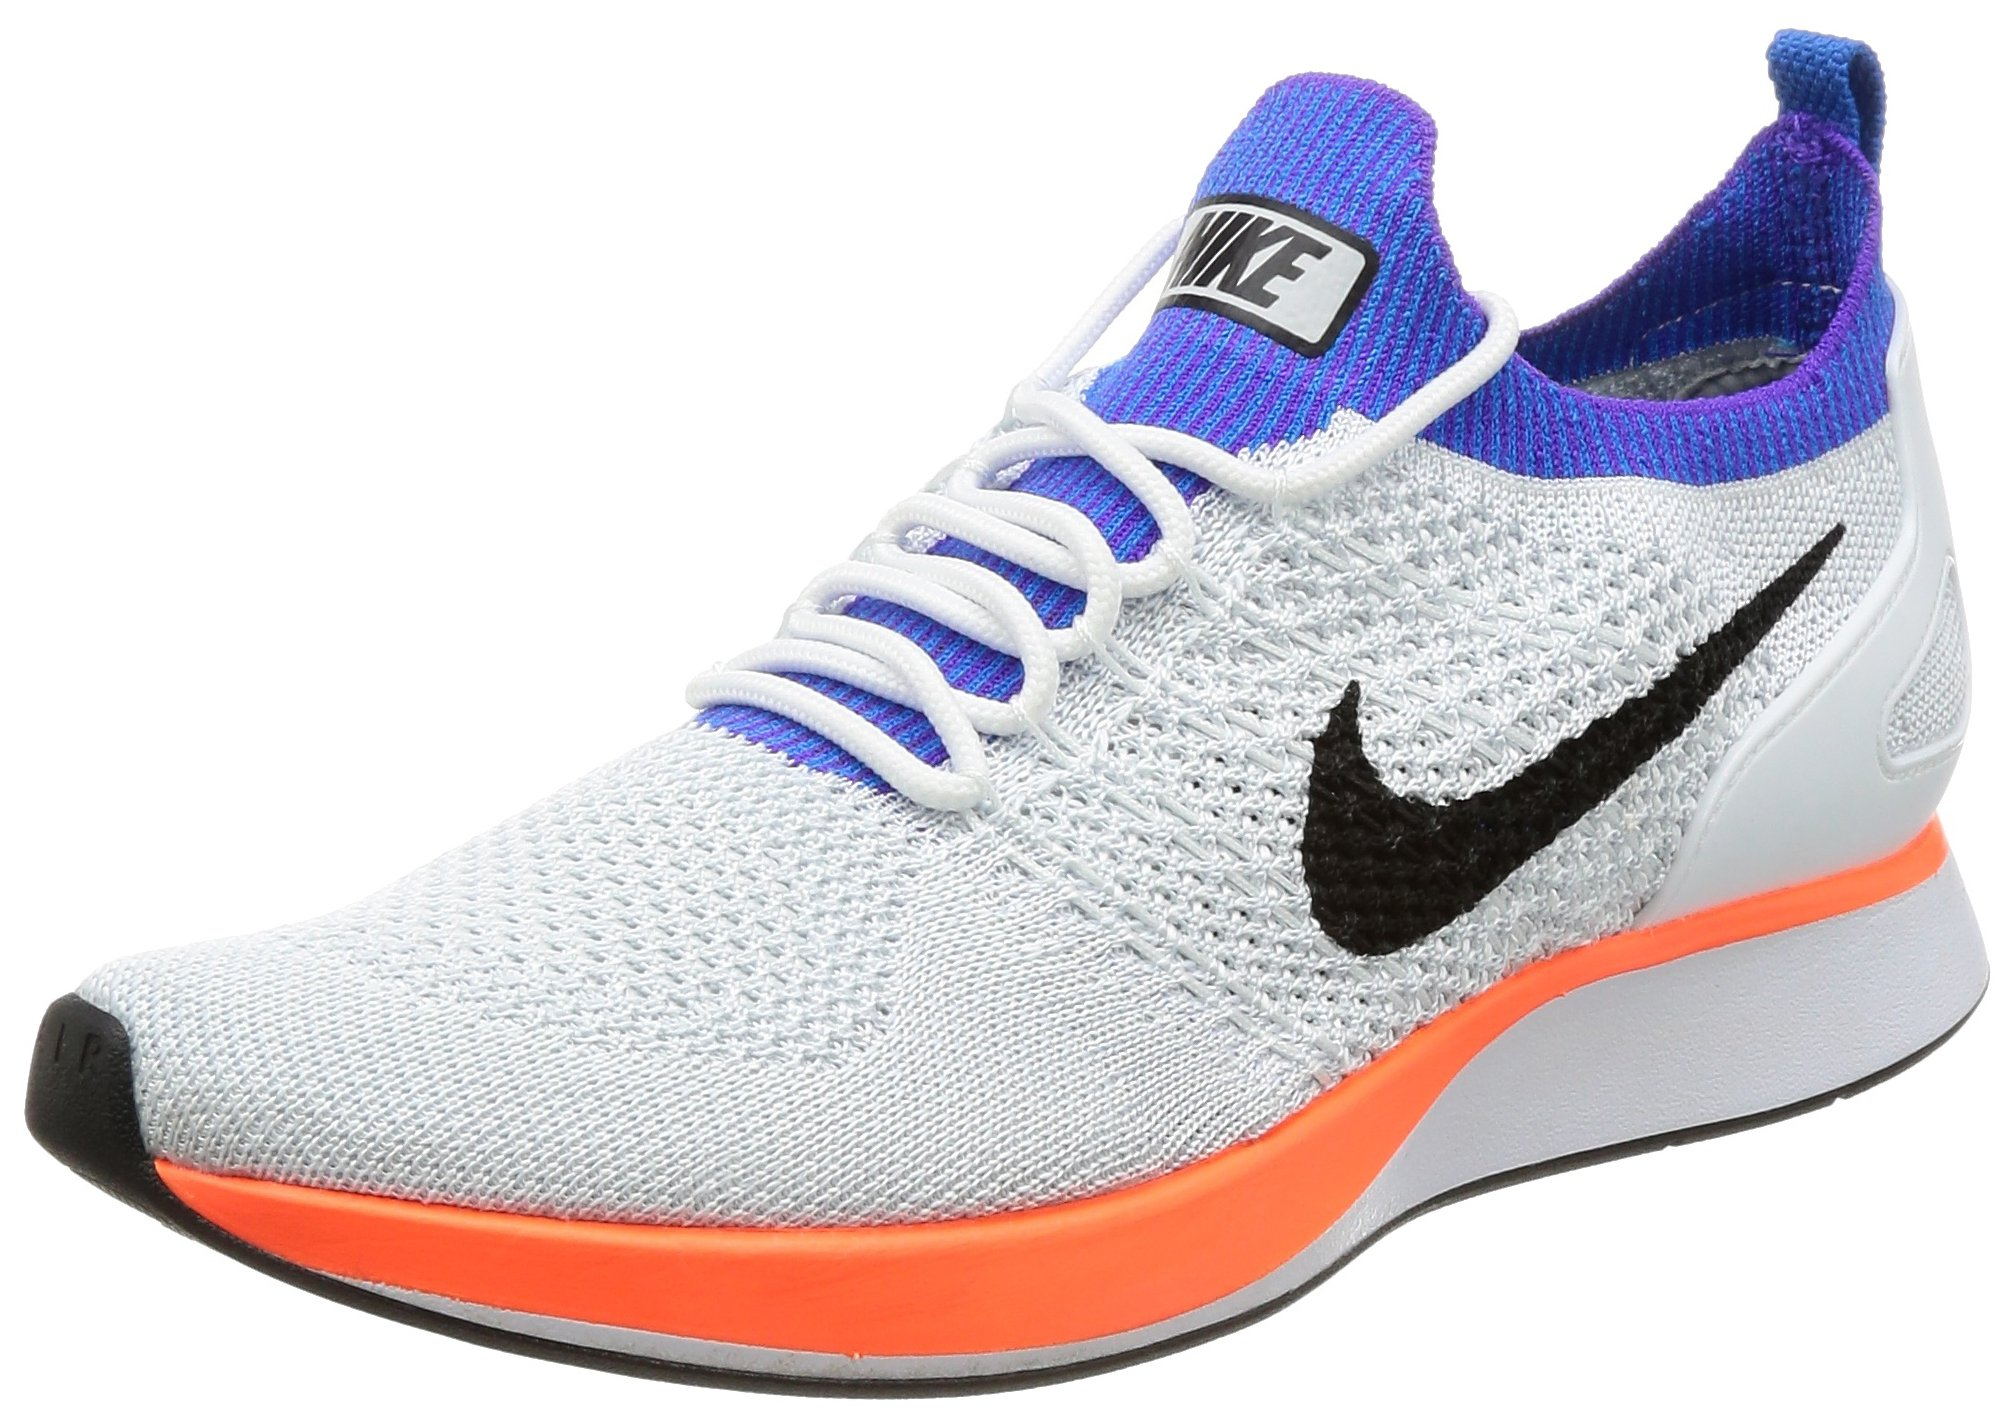 8c57c8985597 Galleon - NIKE Air Zoom Mariah Flyknit Racer Men s Running Shoes  White Hyper Crimson 918264-100 (8.5 D(M) US)